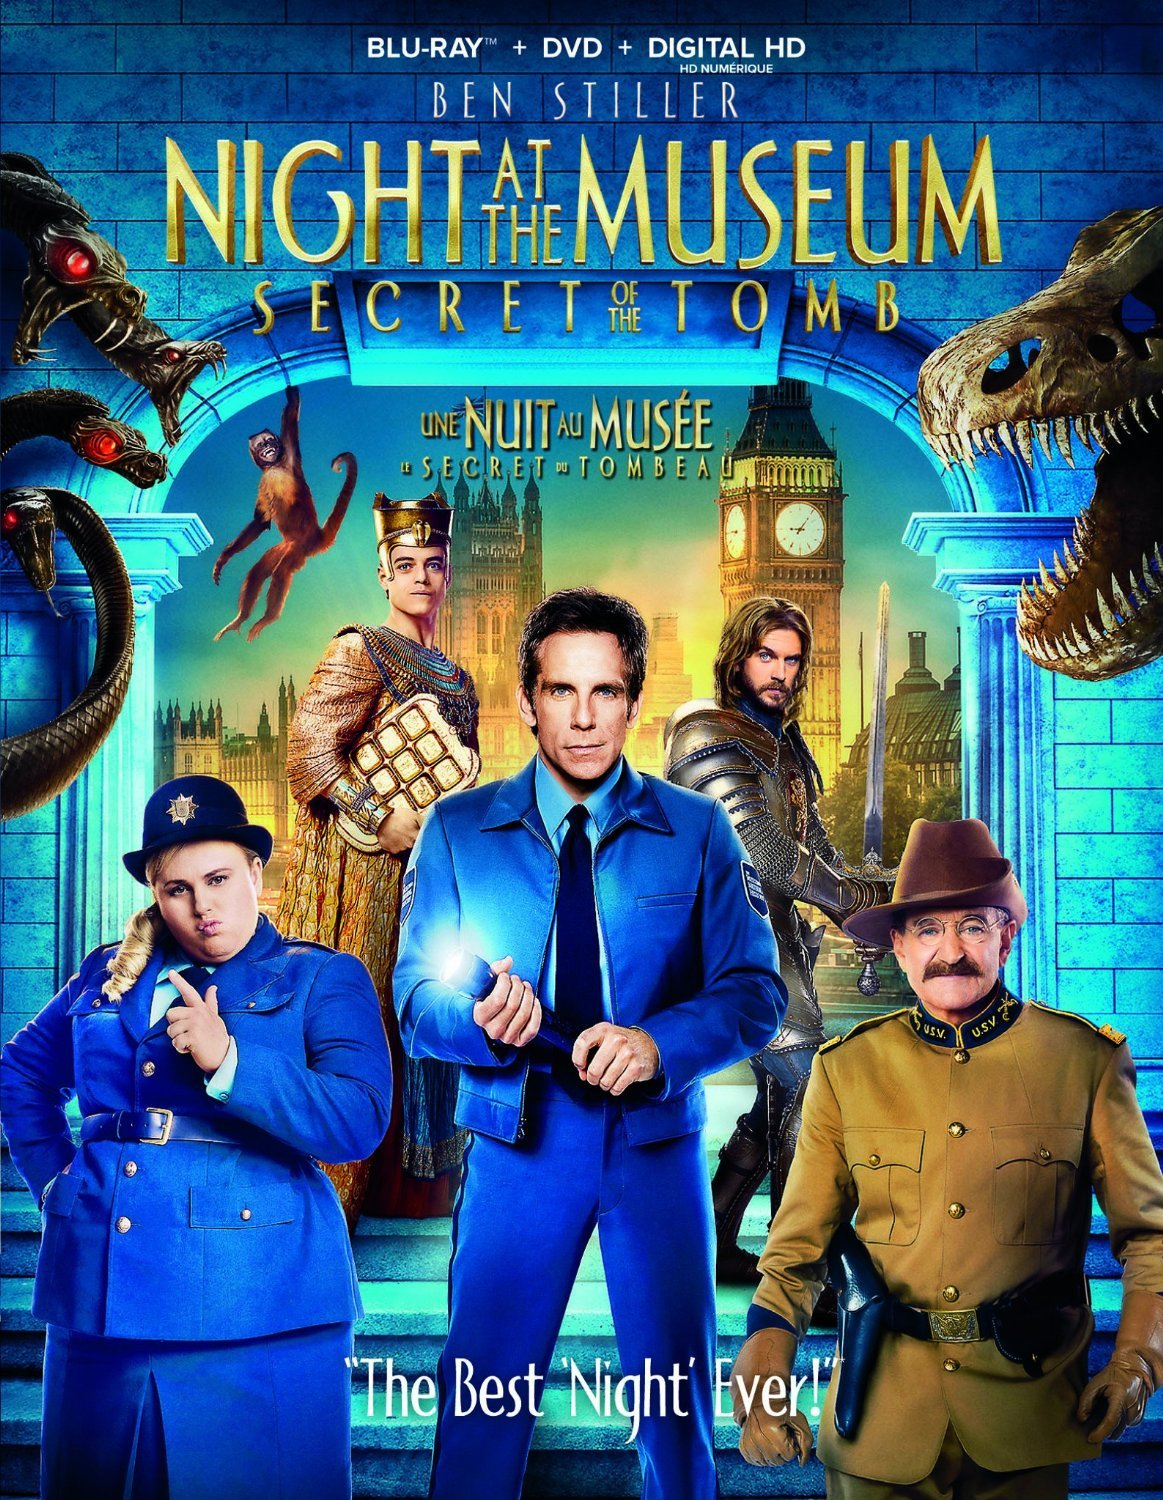 Night At The Museum: Secret Of The Tomb Backgrounds on Wallpapers Vista